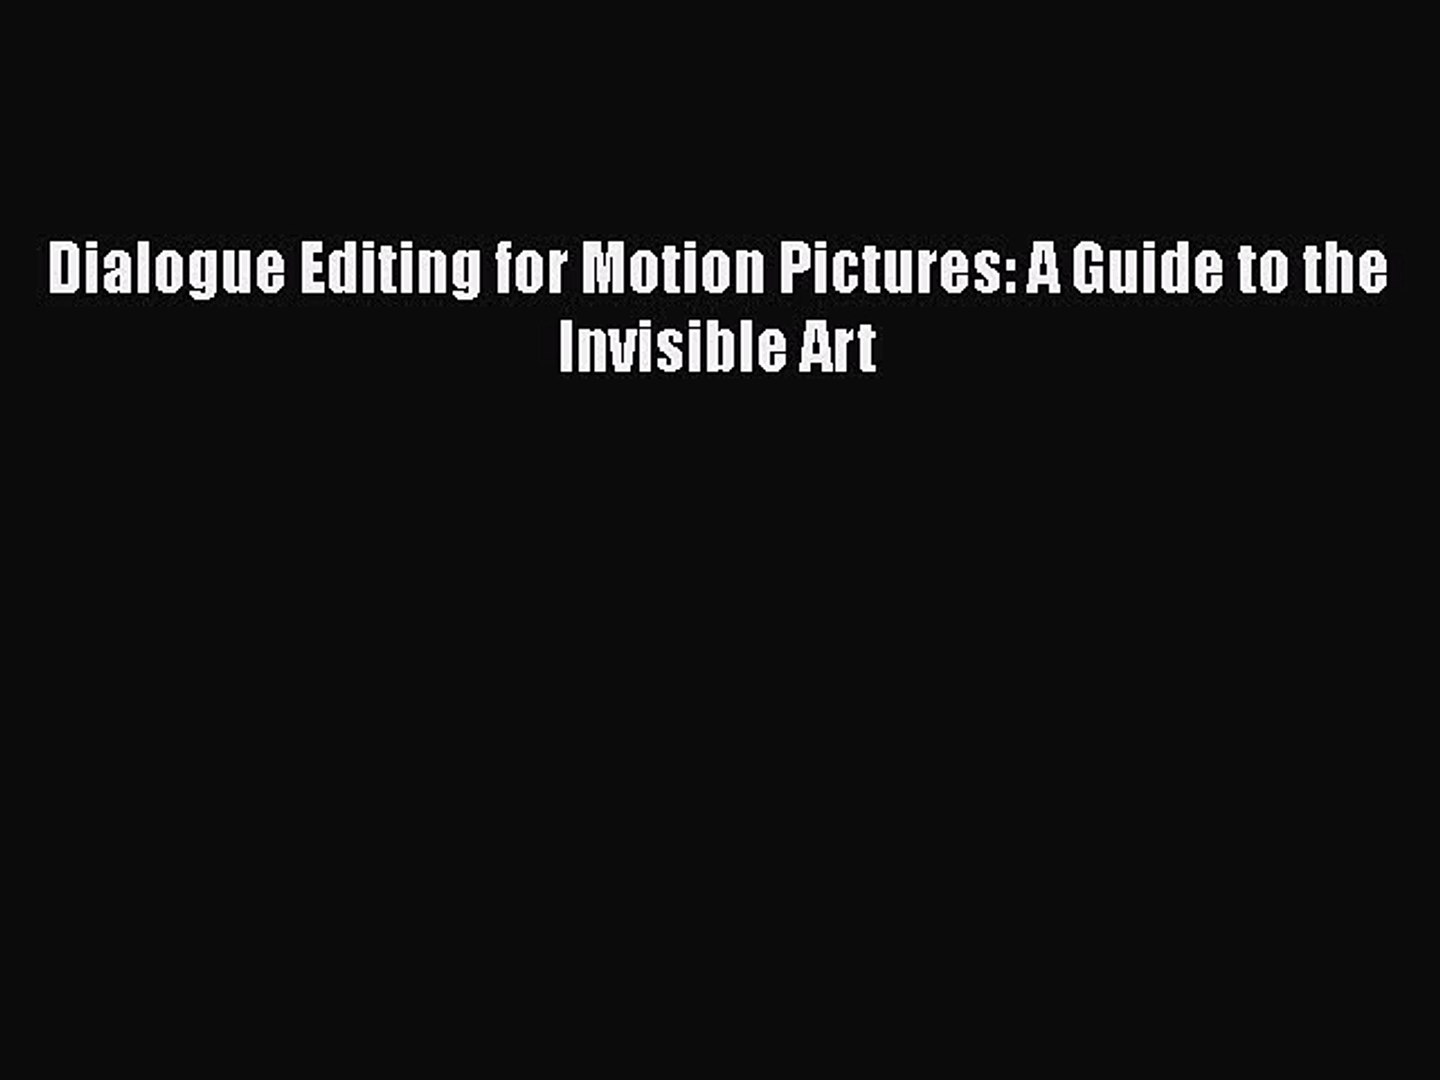 A Guide to the Invisible Art